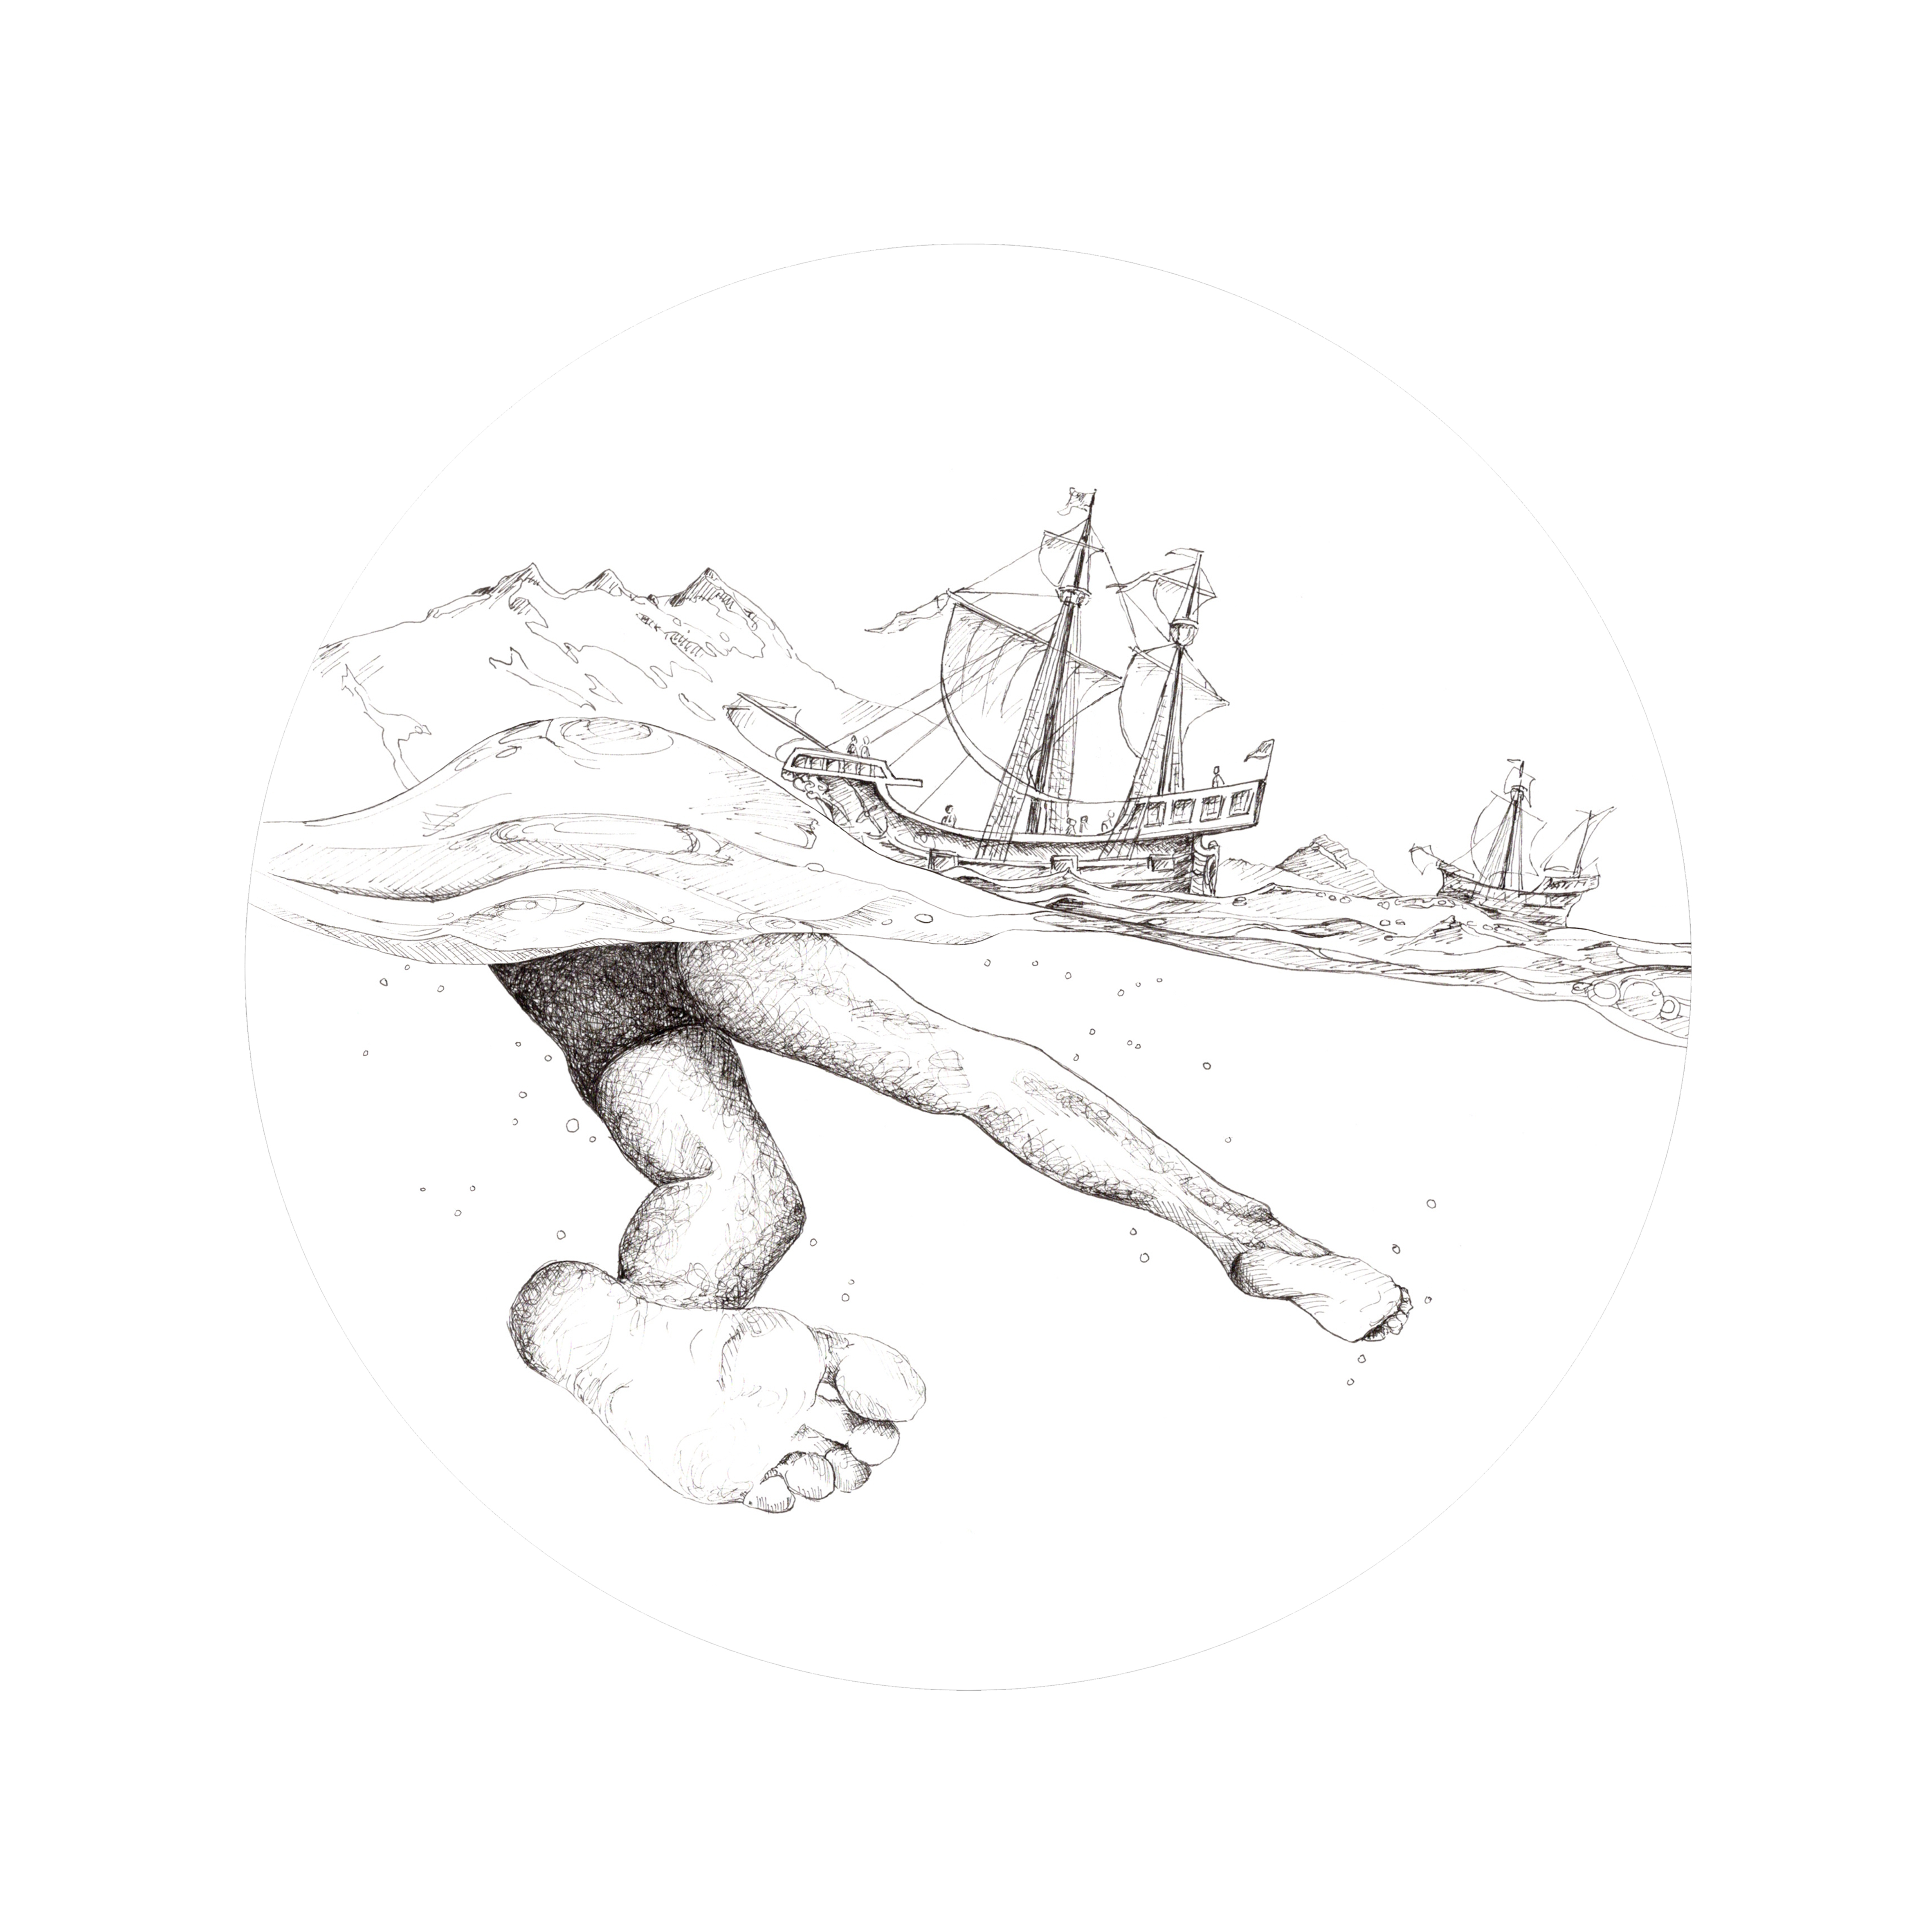 Line drawing of swimming legs under the waves and a ship sailing over top